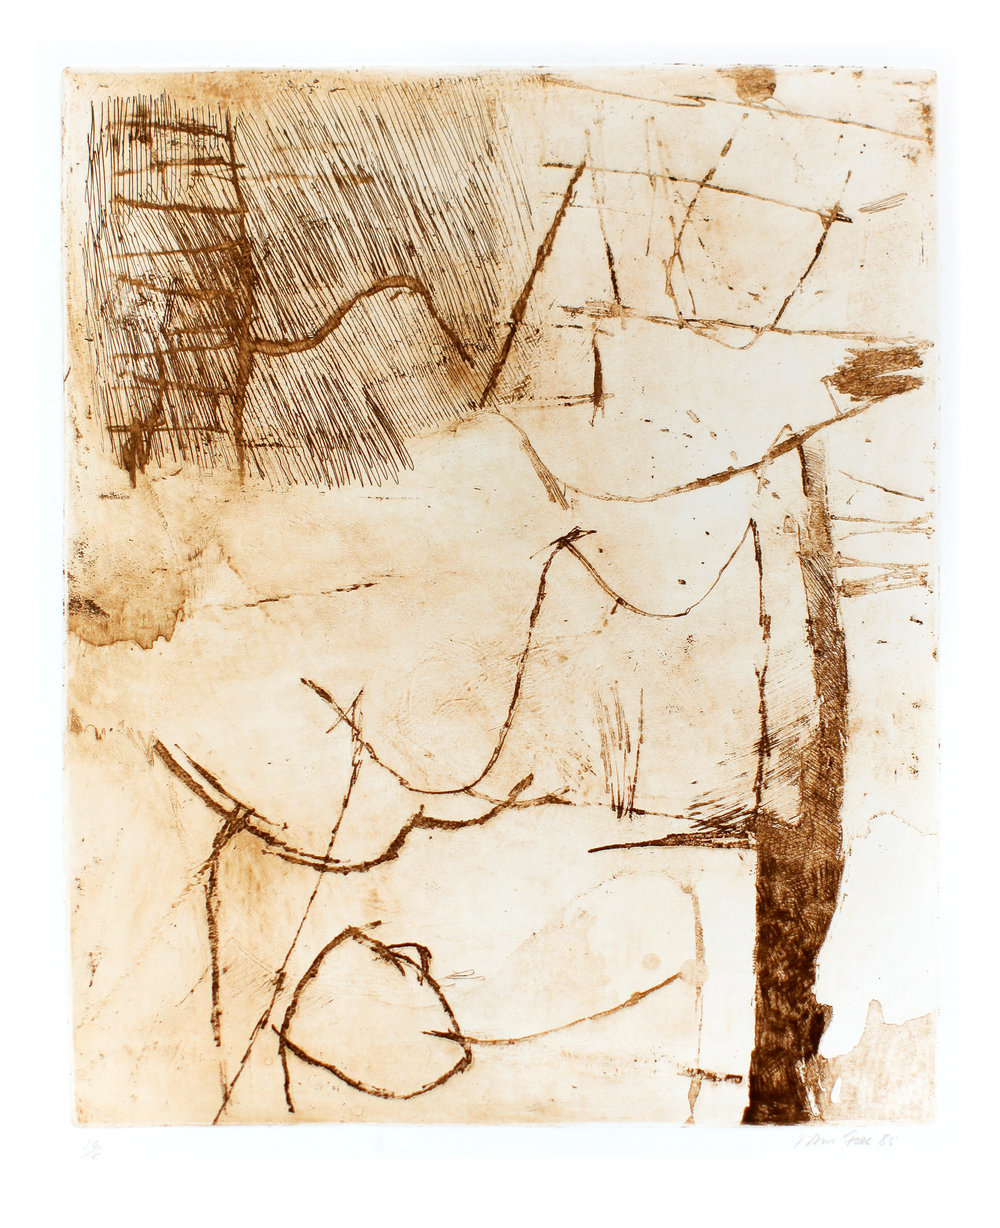 1985_Untitled_etching_drypoint_and_aquatint_26x20in_WPNF014.jpg